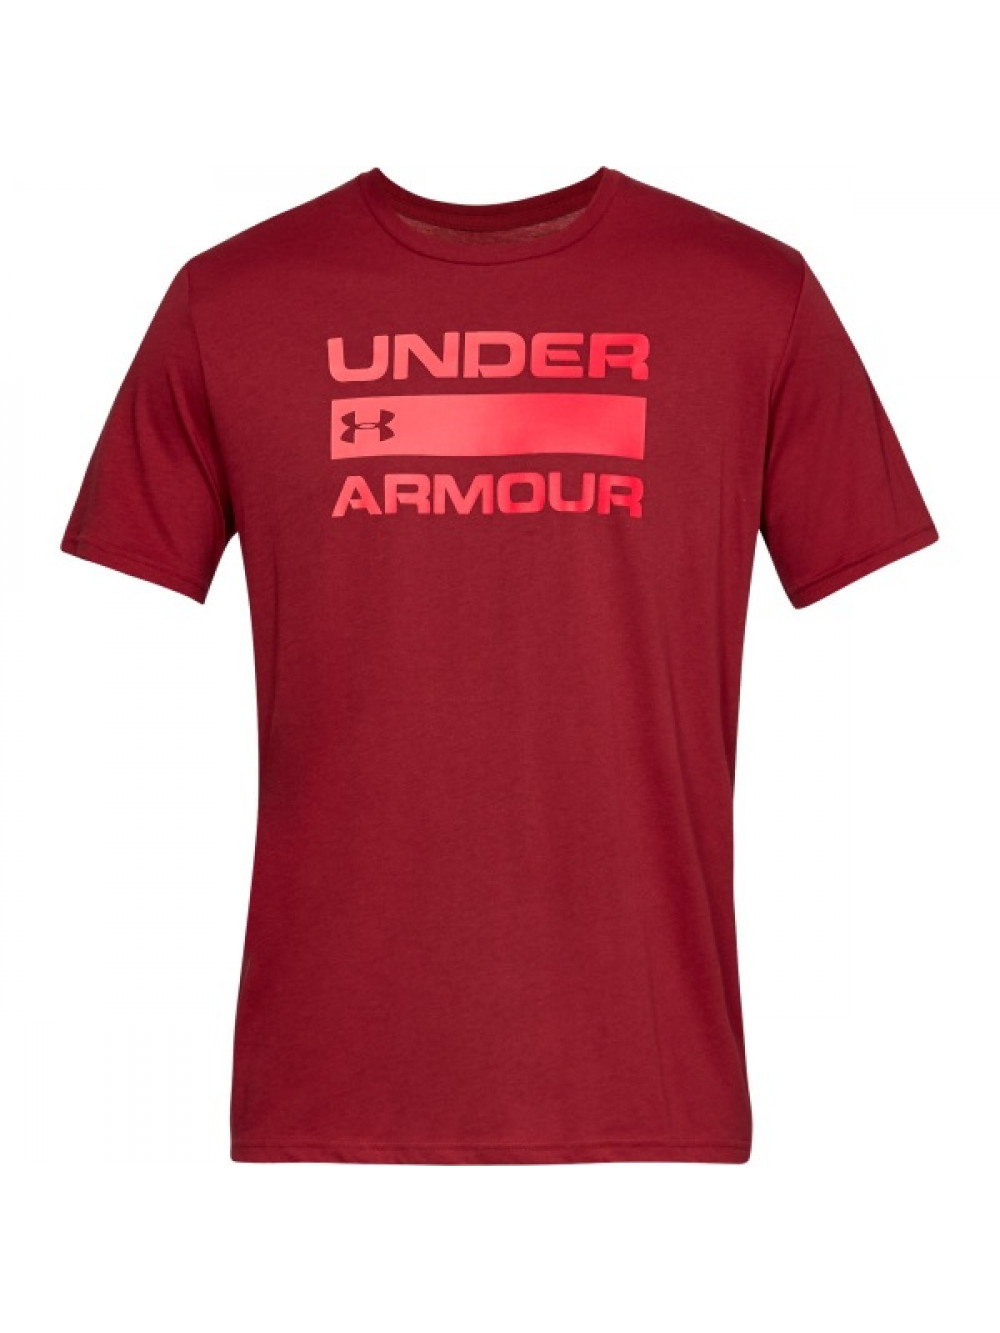 Tričko Under Armour Team Issue Wordmark červené